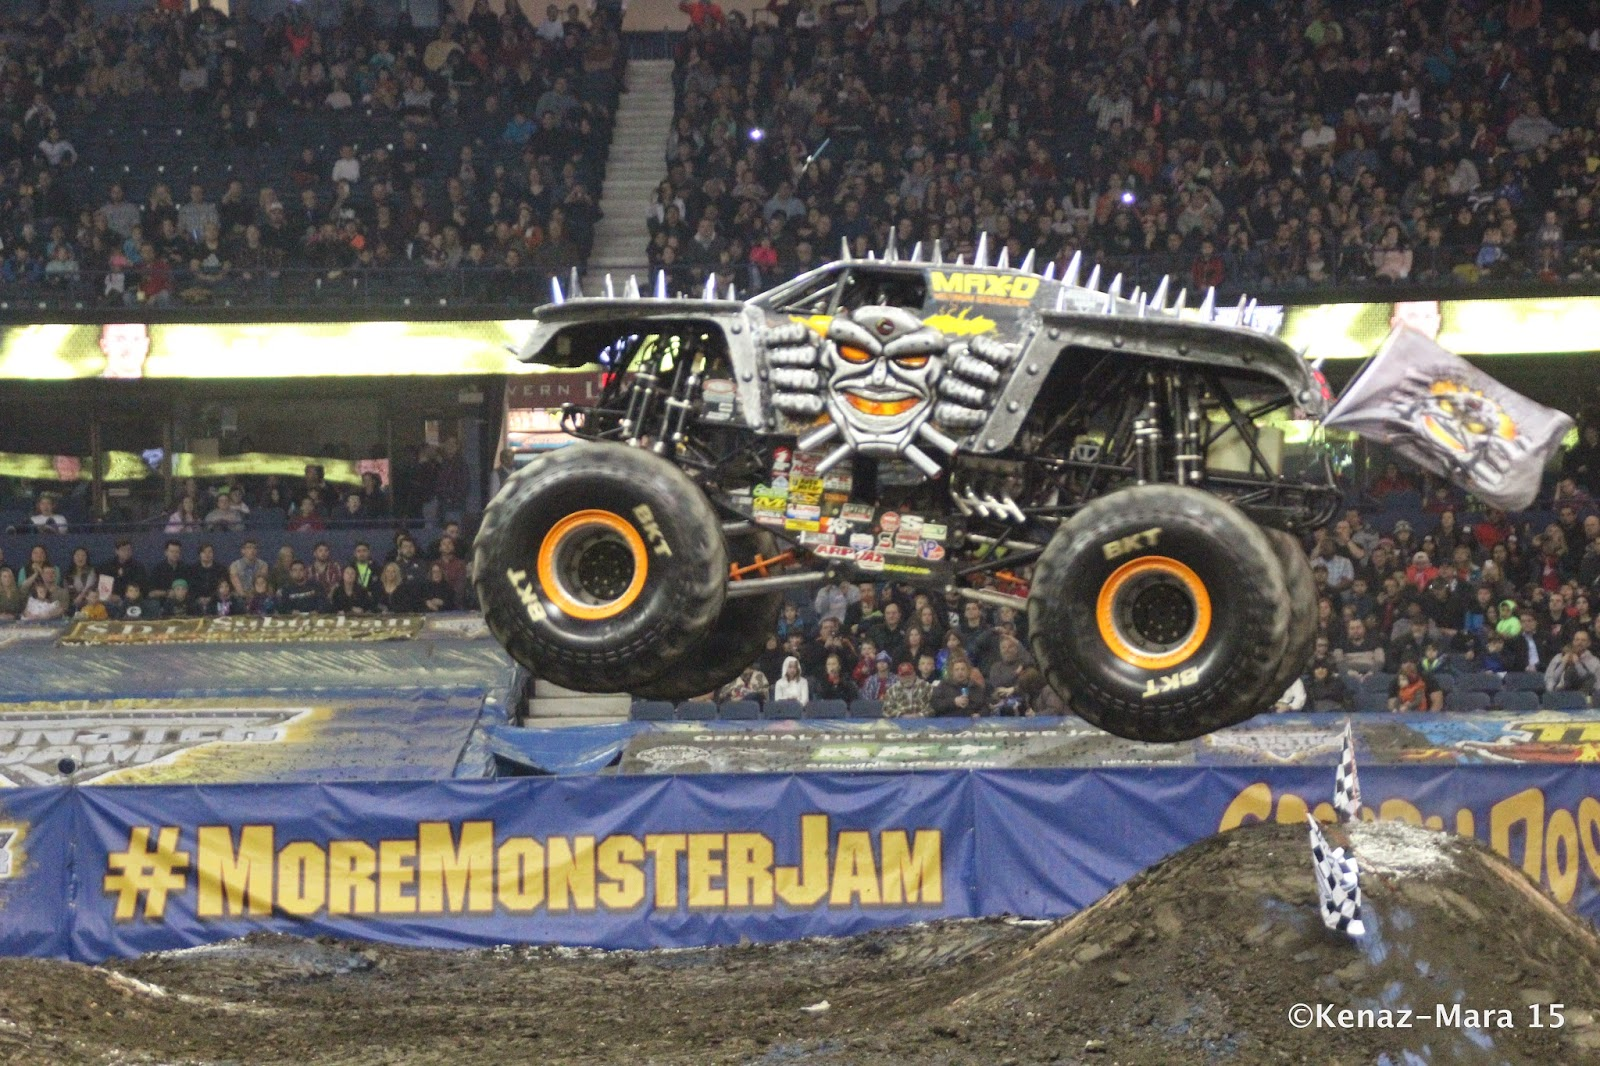 Maxd Stock Quote Chiil Mama Chiil Mama's Adventures At Monster Jam 2015 At